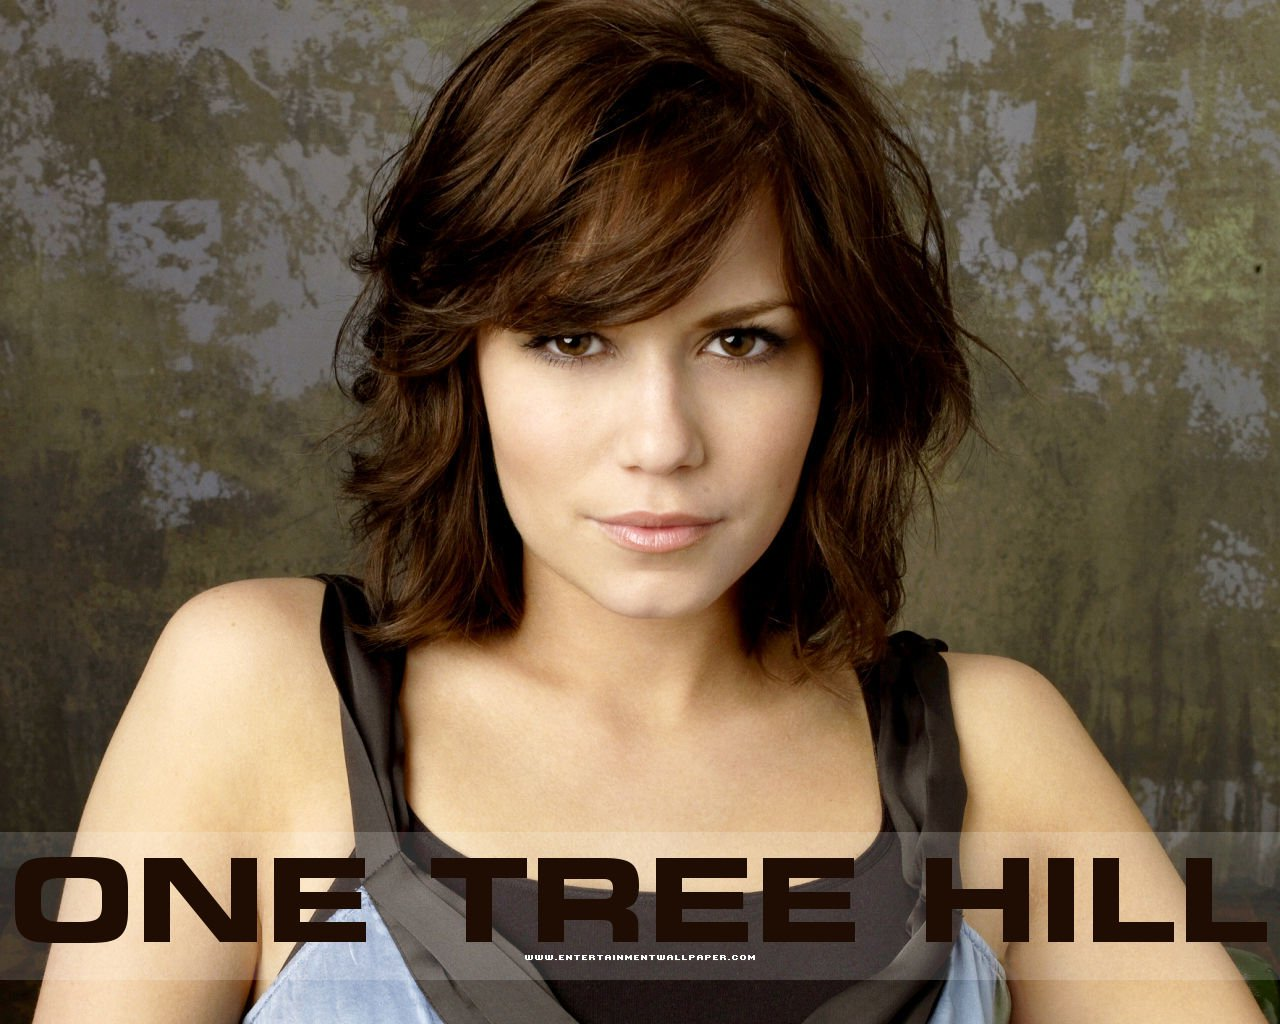 ONE TREE HILL (2003) poster - TVPoster.net